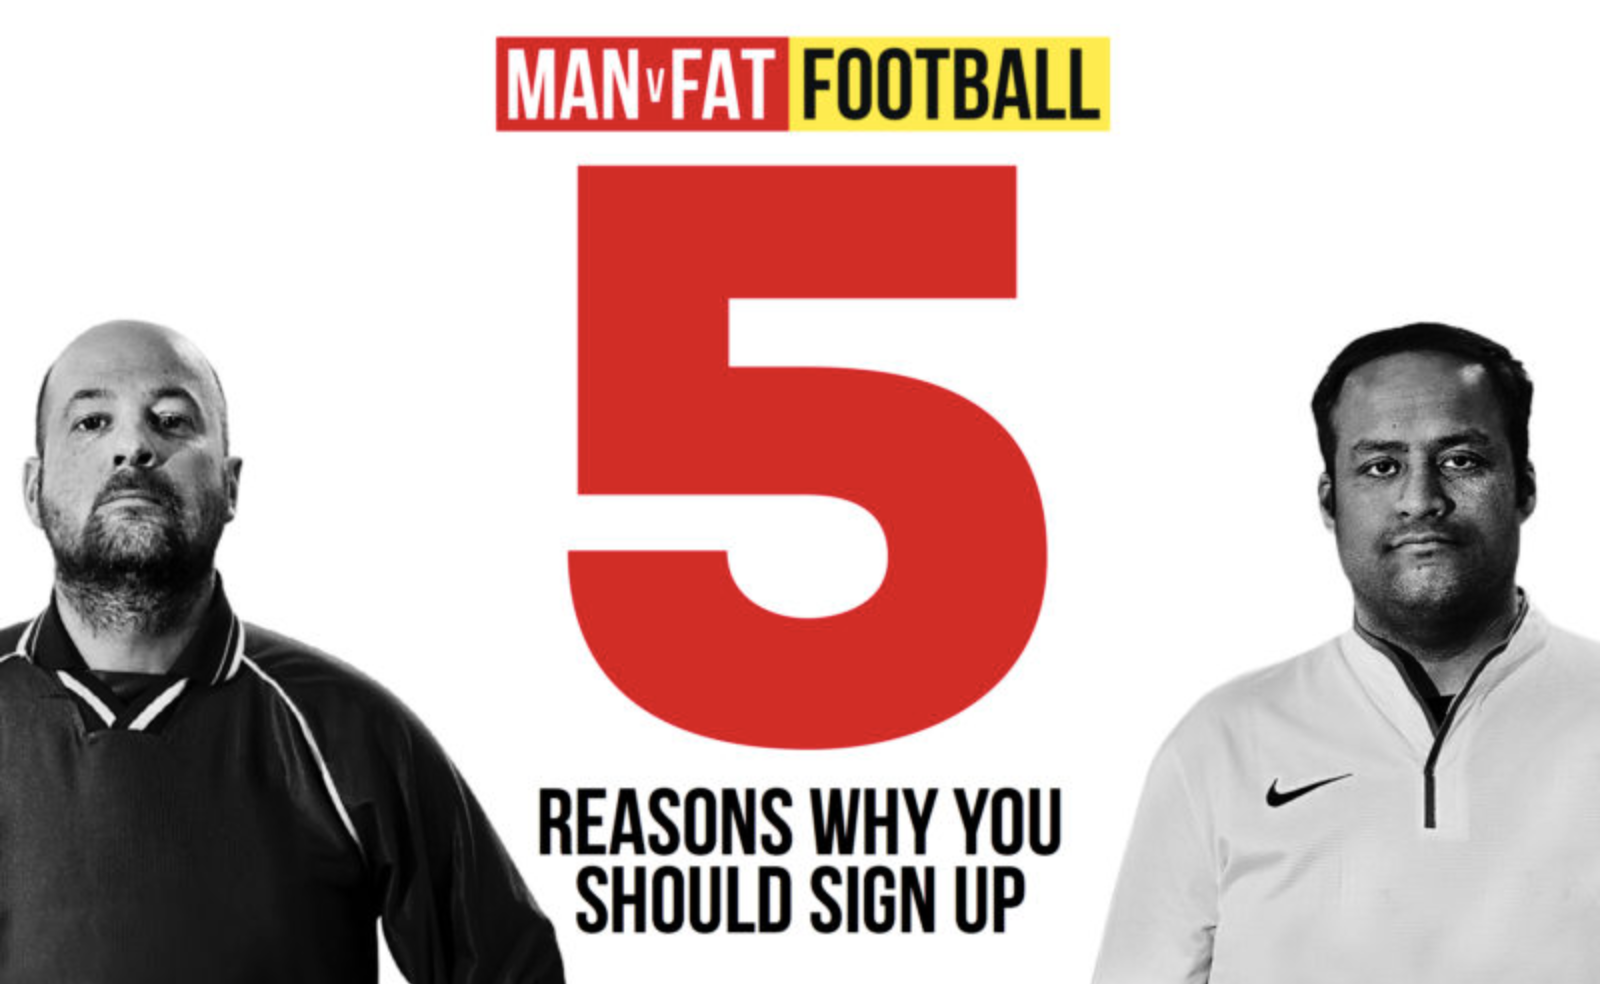 Why MAN v FAT Football?